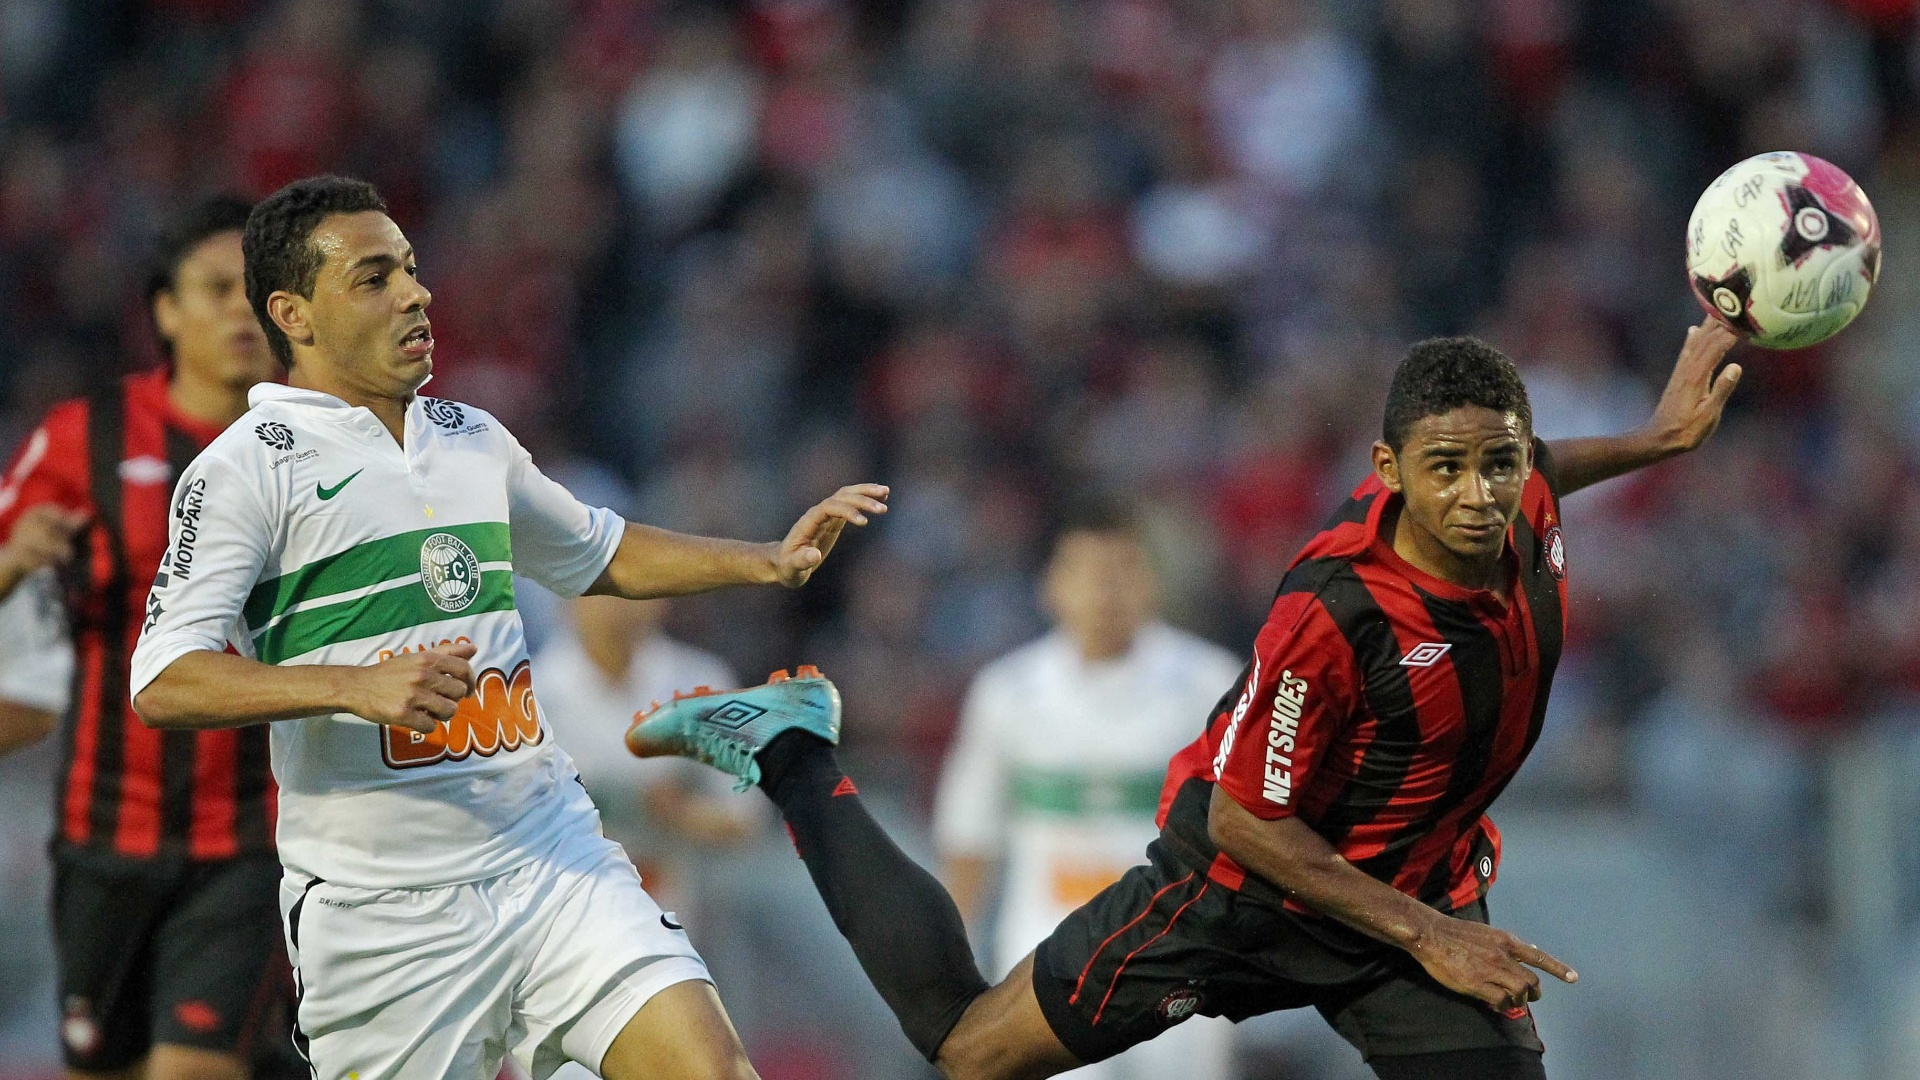 Deivid, do Atletico-PR, disputa lance com Roberto, do Coritiba, na primeira partida da final do Paranaense